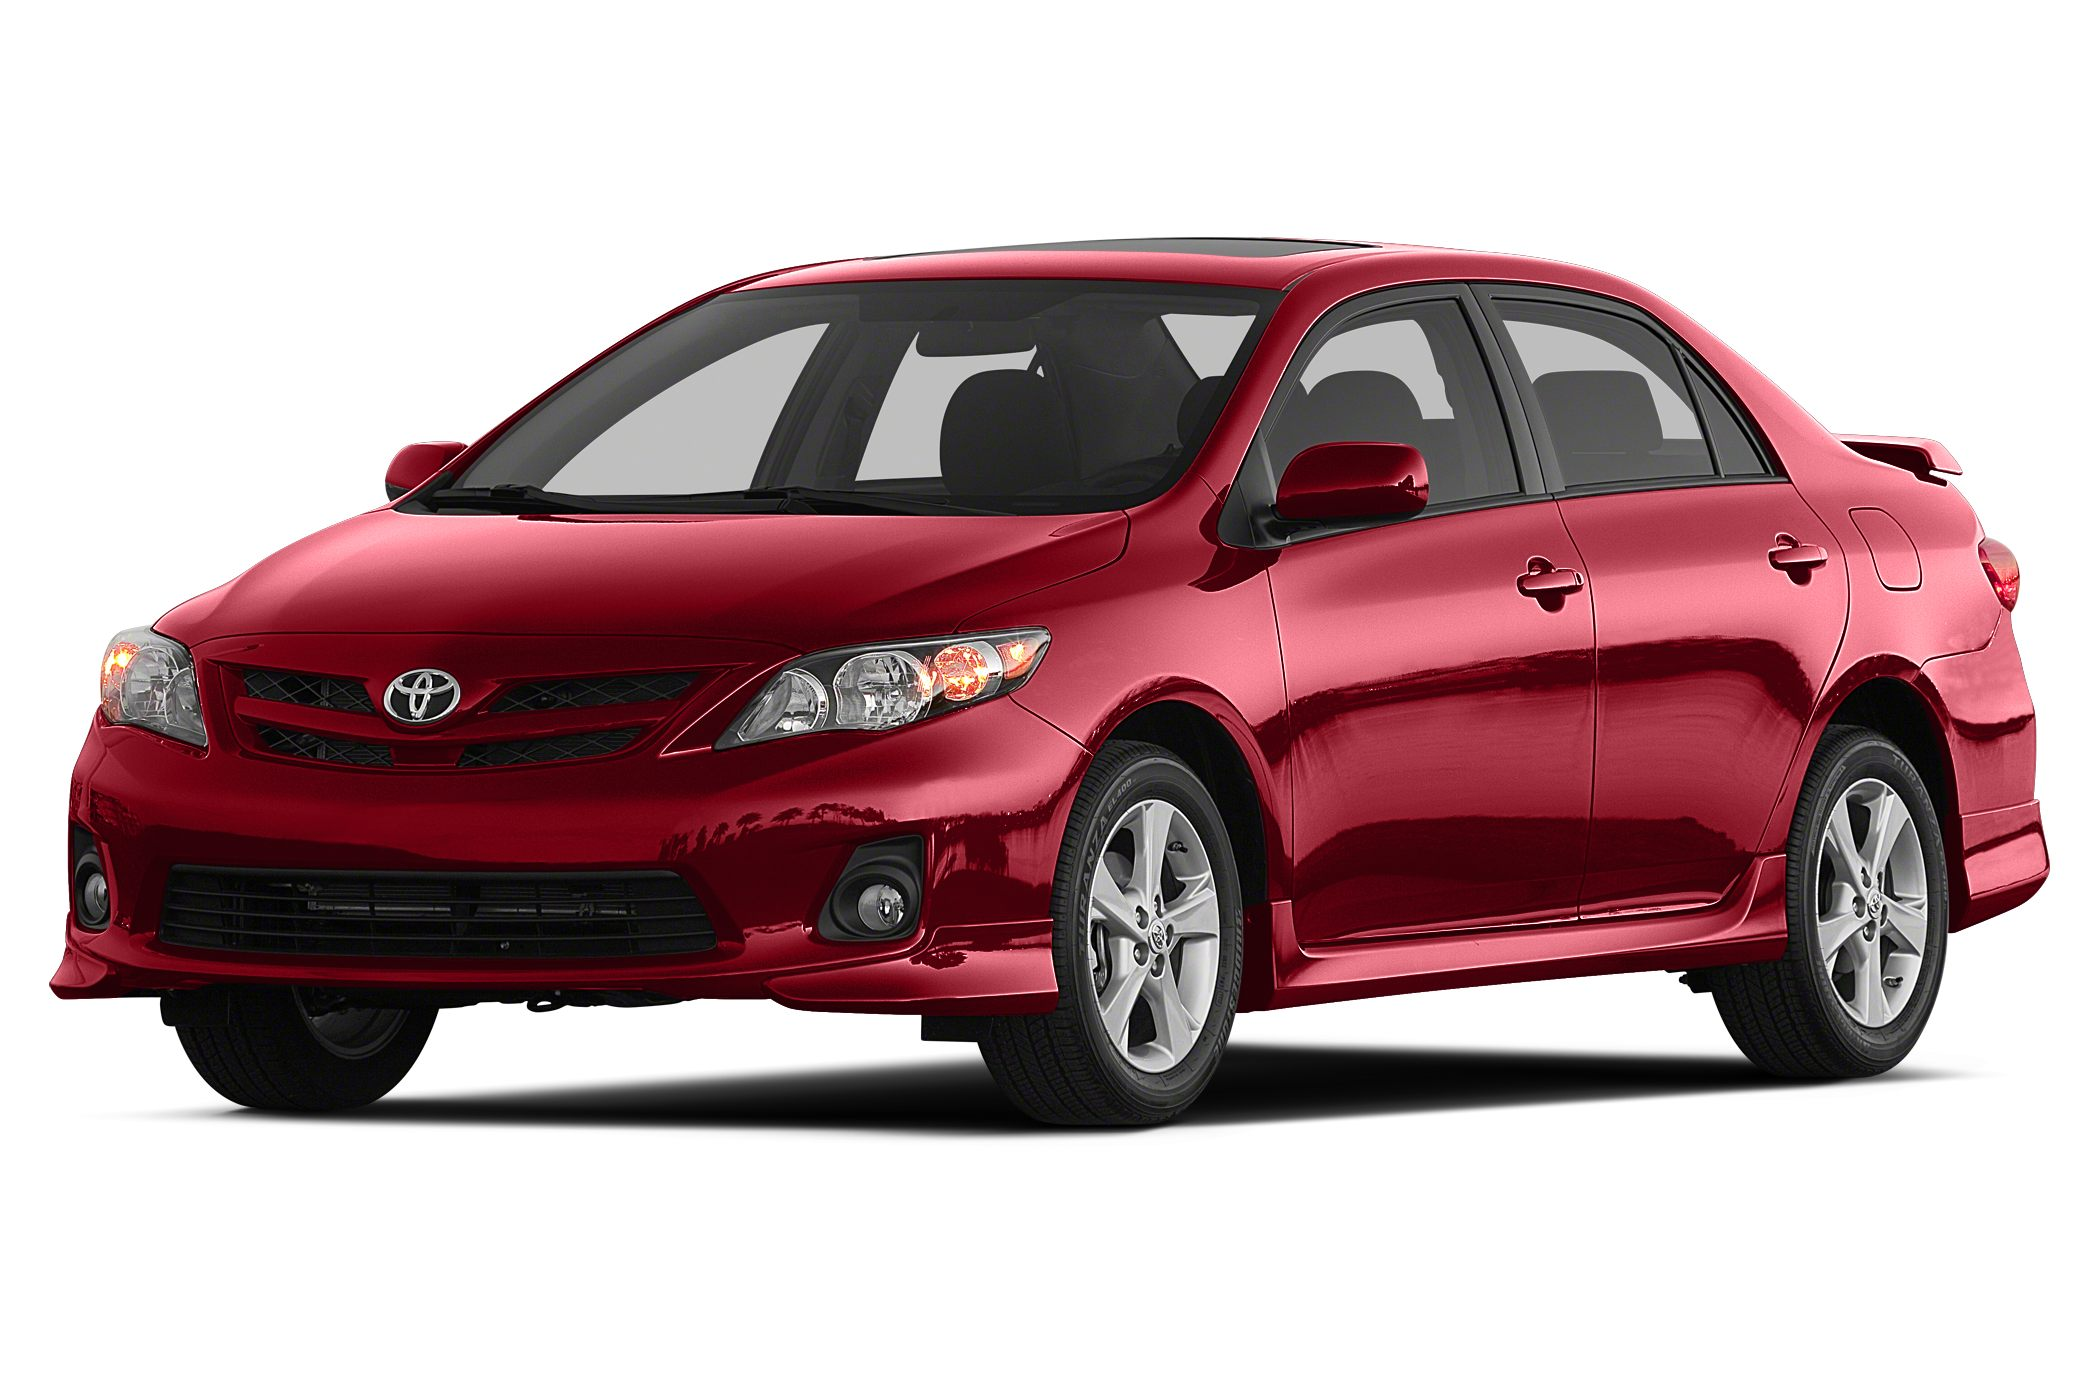 2013 Toyota Corolla S Sedan for sale in Chester for $17,995 with 10,935 miles.